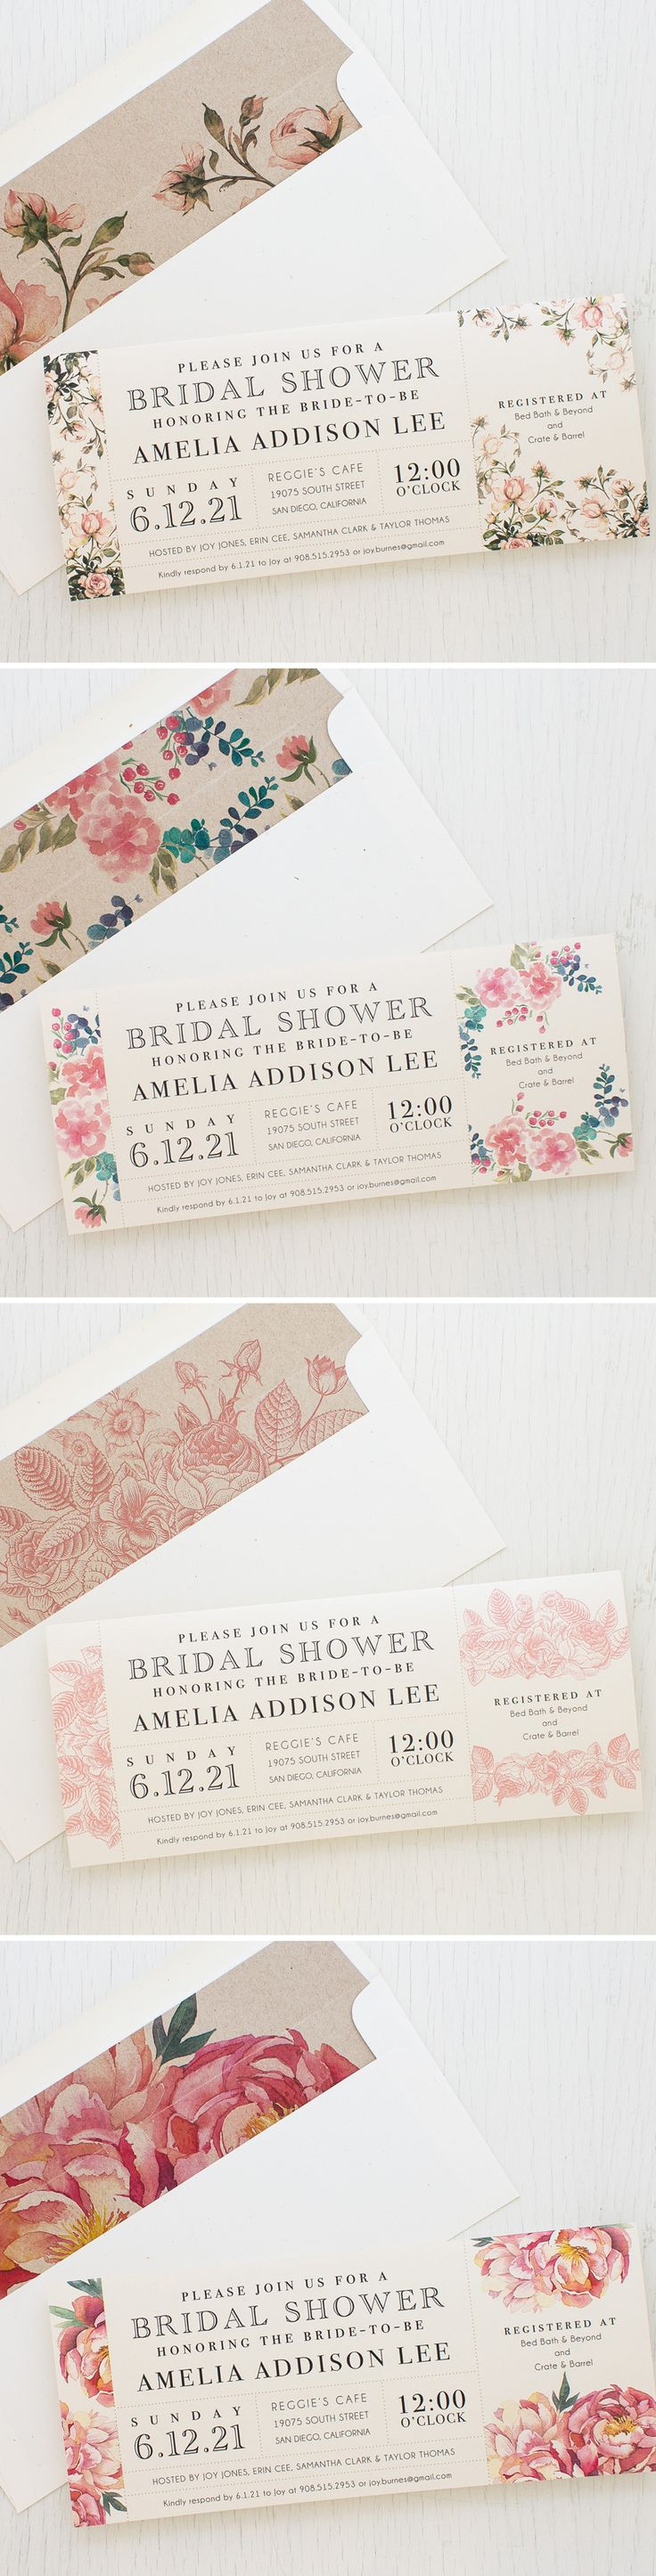 It's a girly garden party! Blush pink & floral pretty bridal shower invites. Complete with matching envelope liners. New from Beacon Lane!